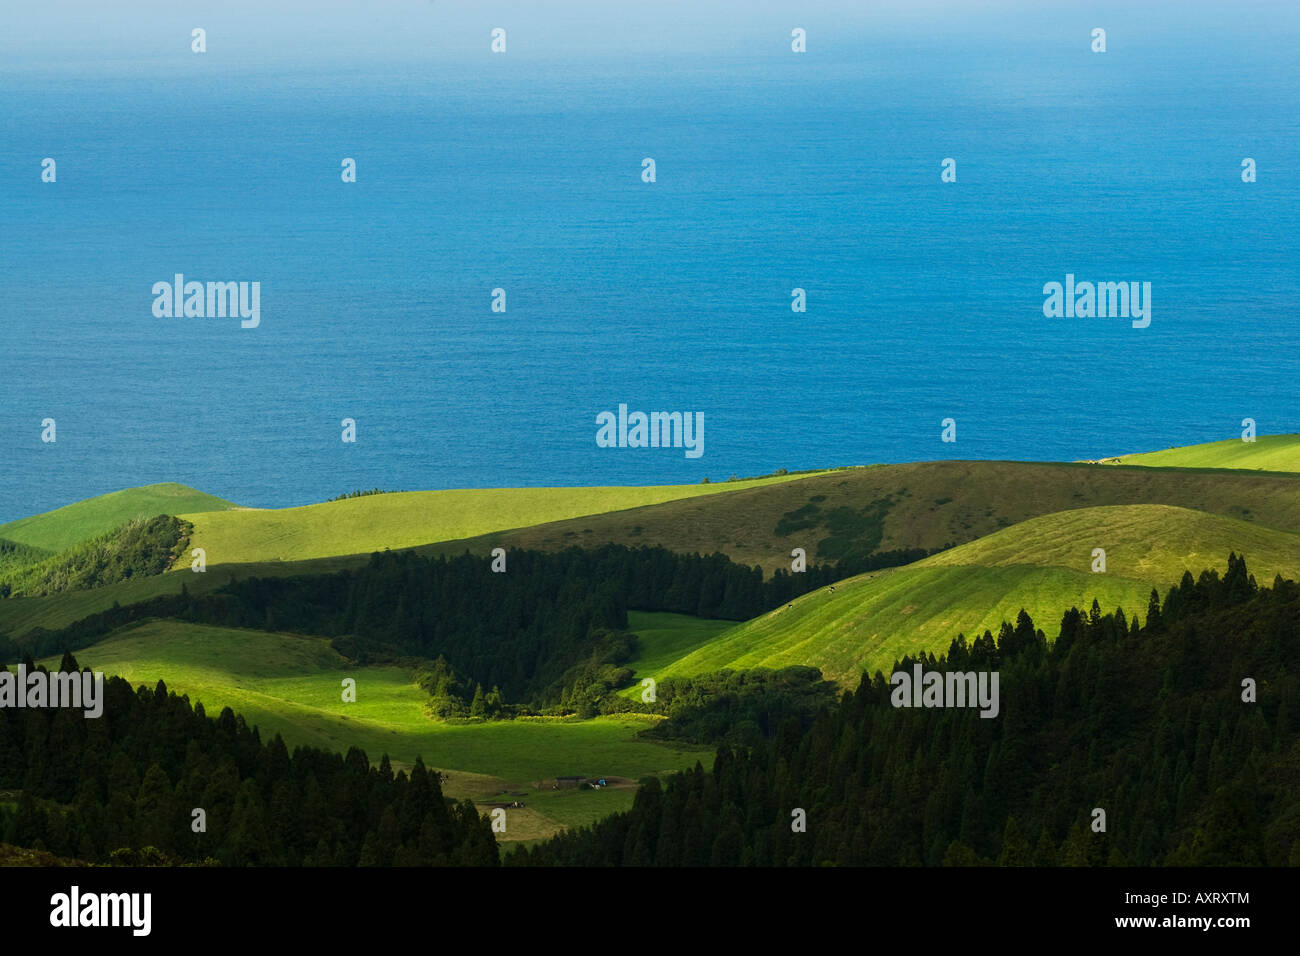 view looking out to the atlantic ocean across the fertile farm land of the Azores - Stock Image